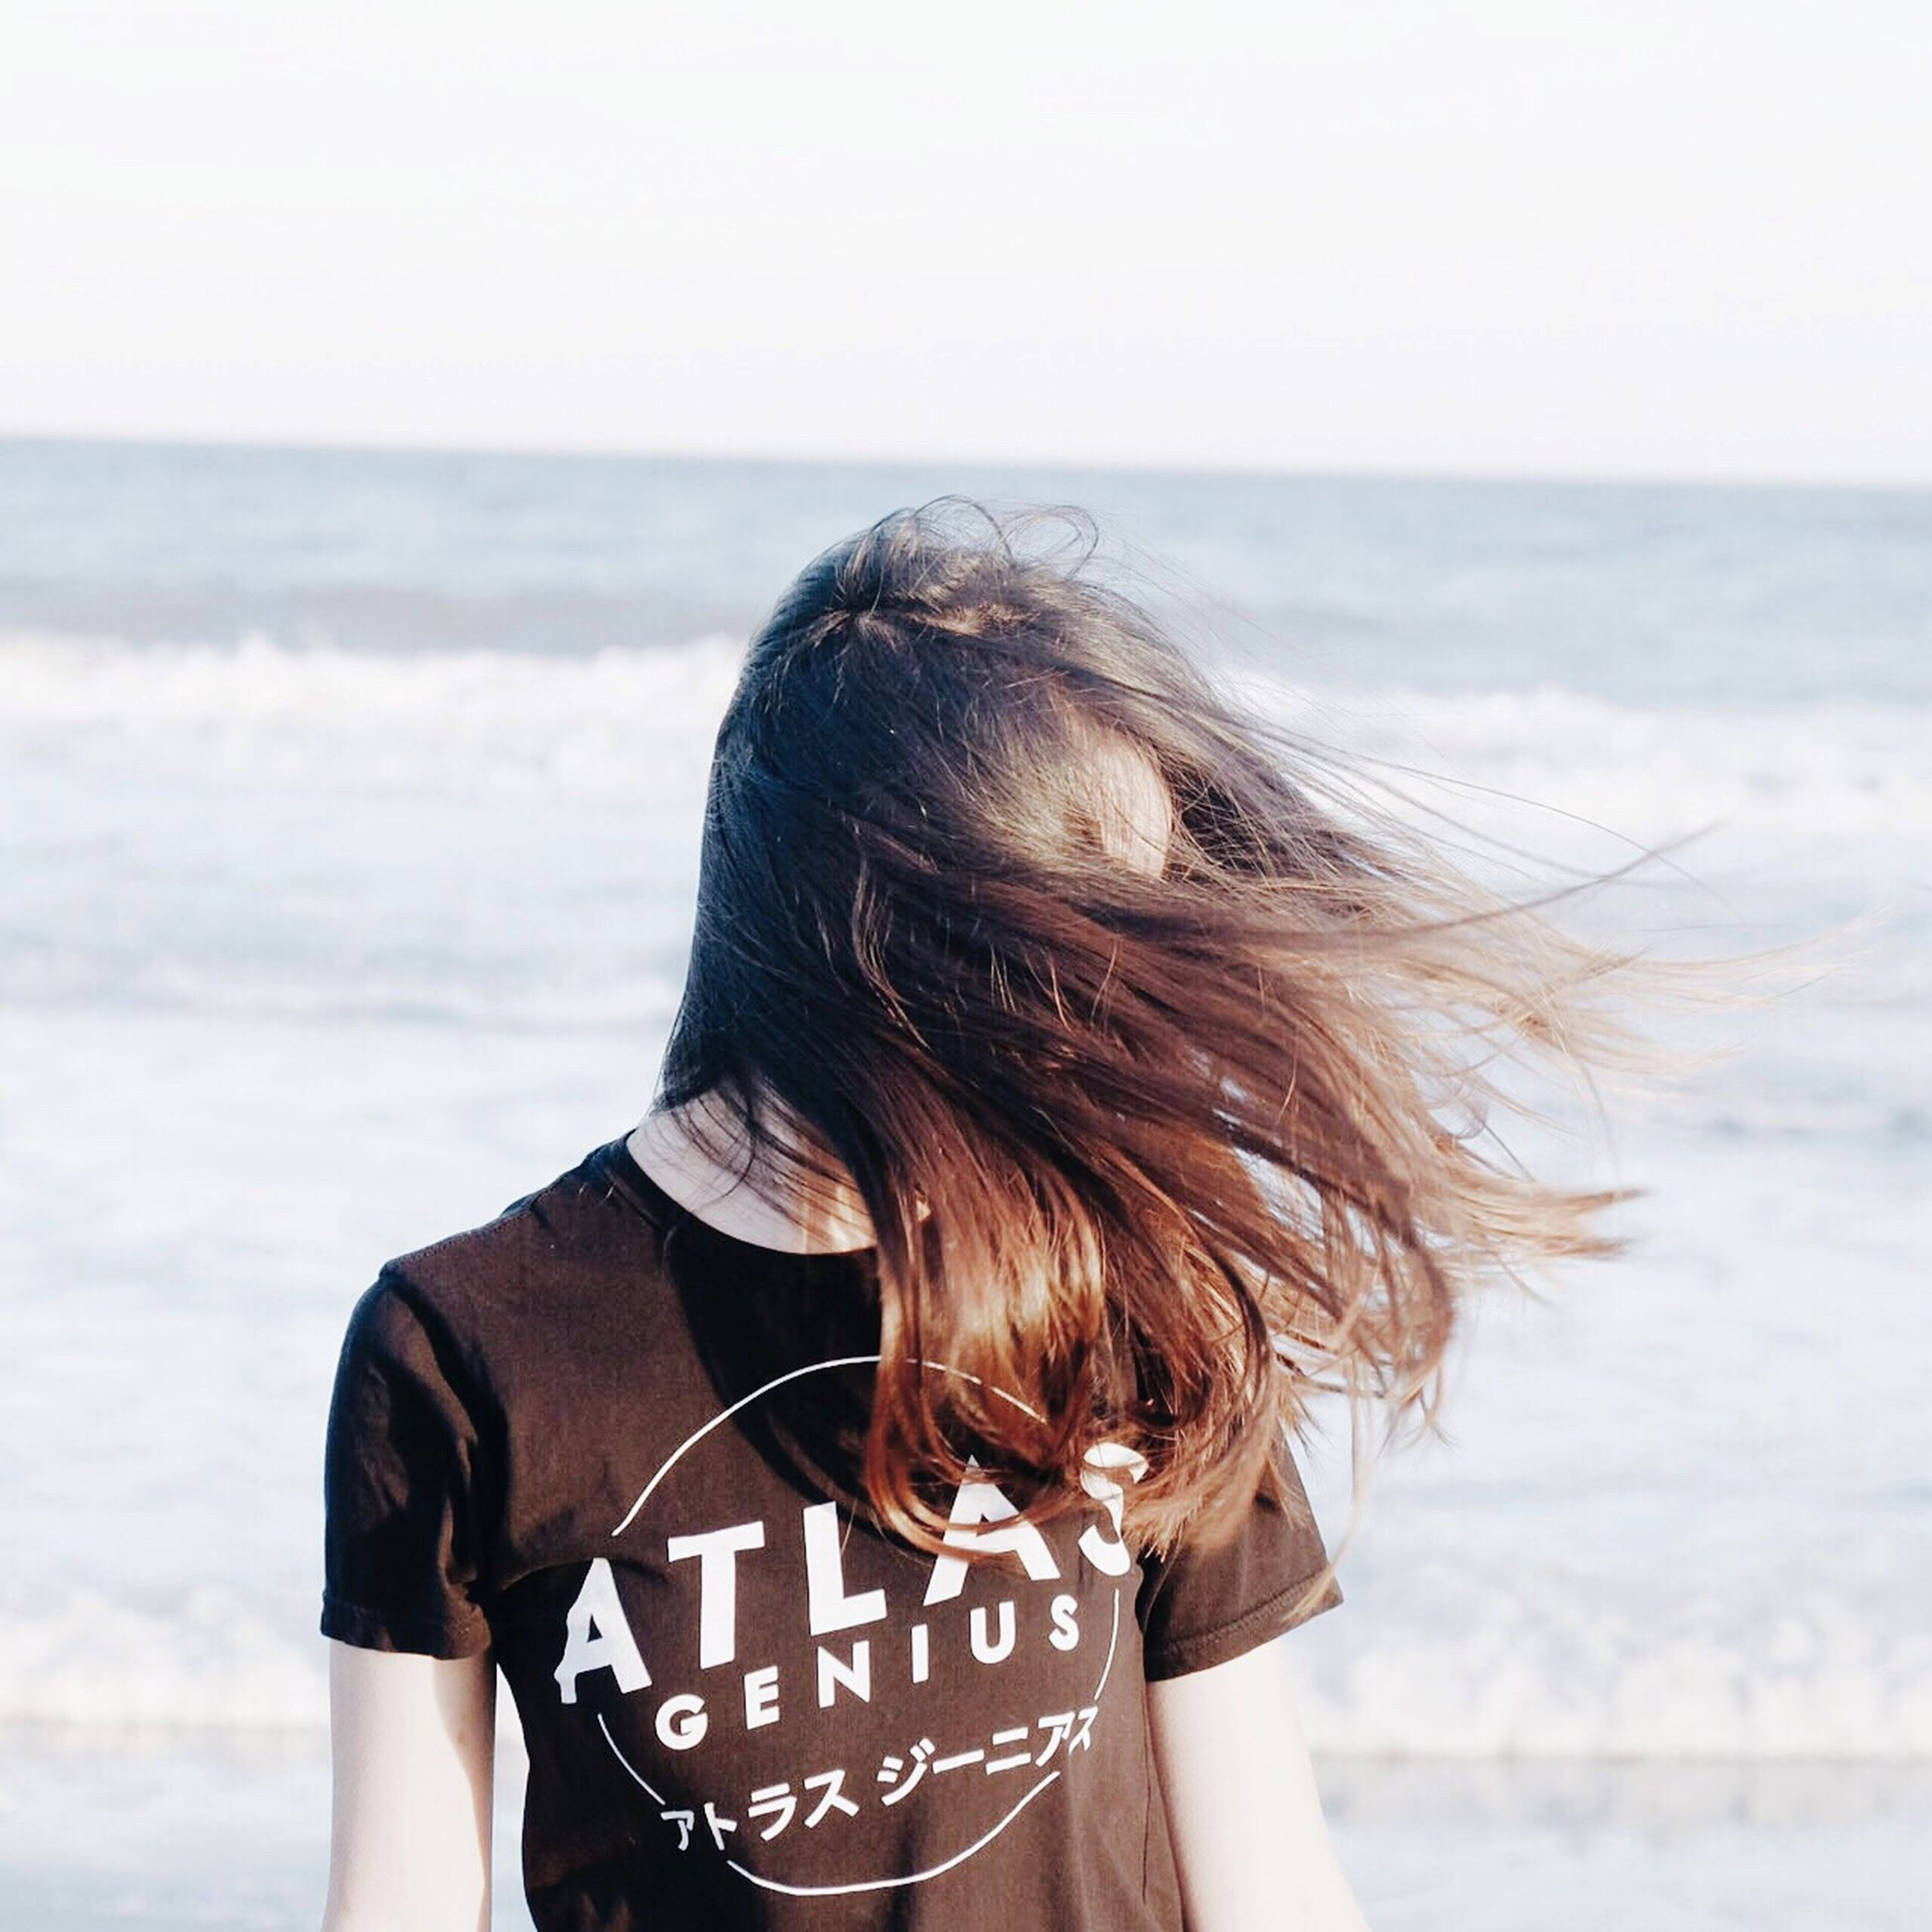 sea, horizon over water, rear view, lifestyles, focus on foreground, leisure activity, water, beach, person, standing, clear sky, sky, waist up, holding, long hair, nature, side view, beauty in nature